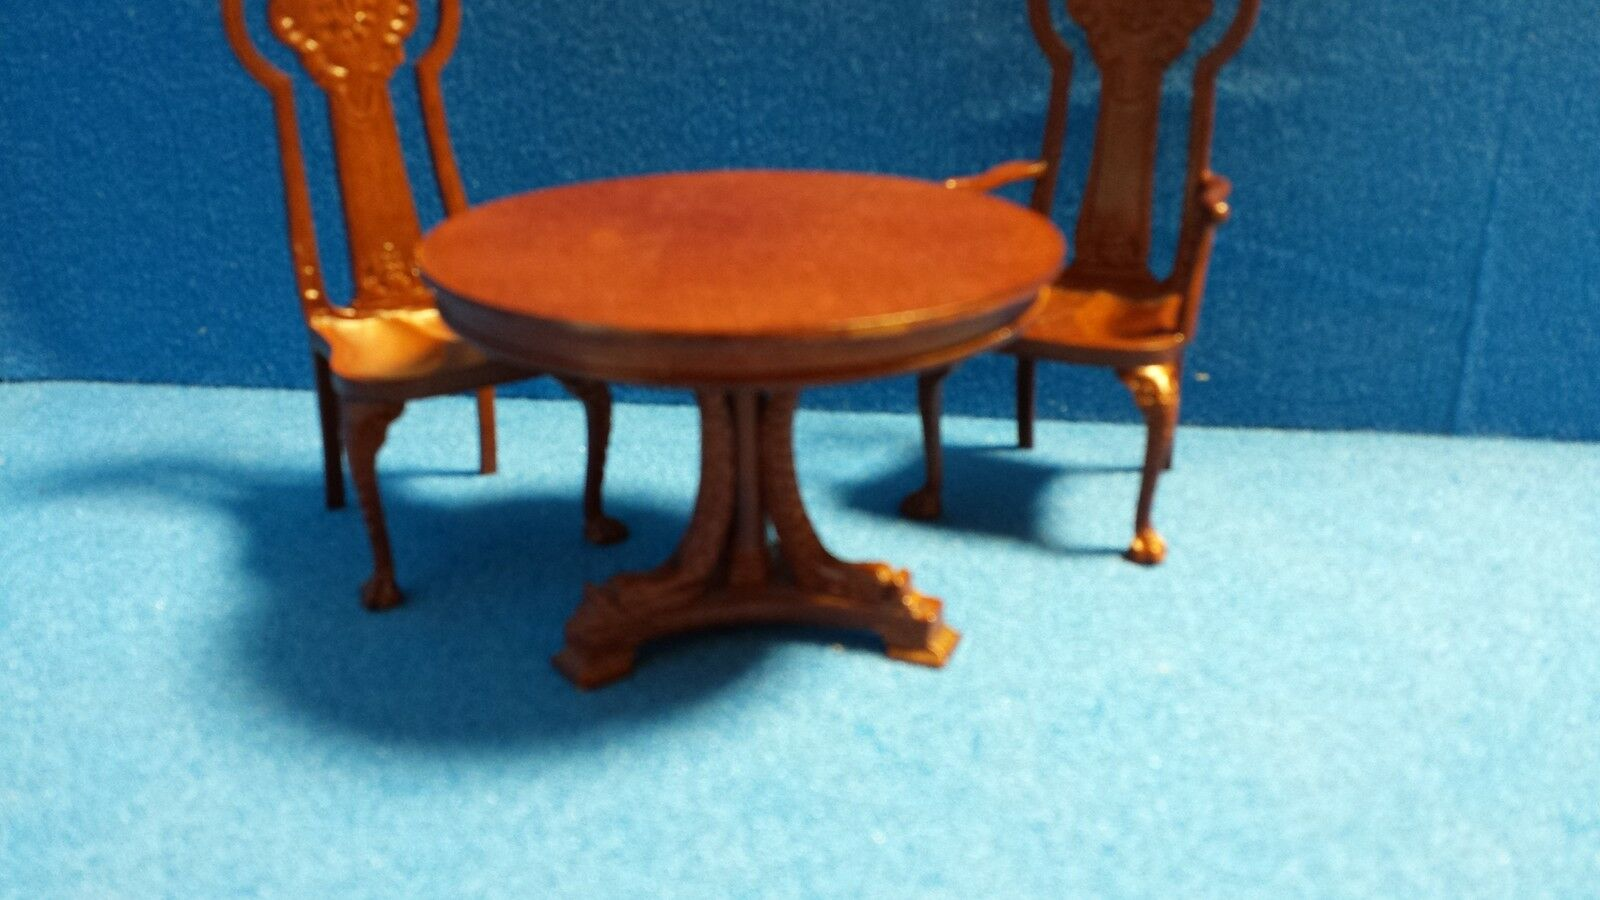 1/12 scale Dolls House Quality Furniture  Table & 4 Chairs  Set   DHD06020set